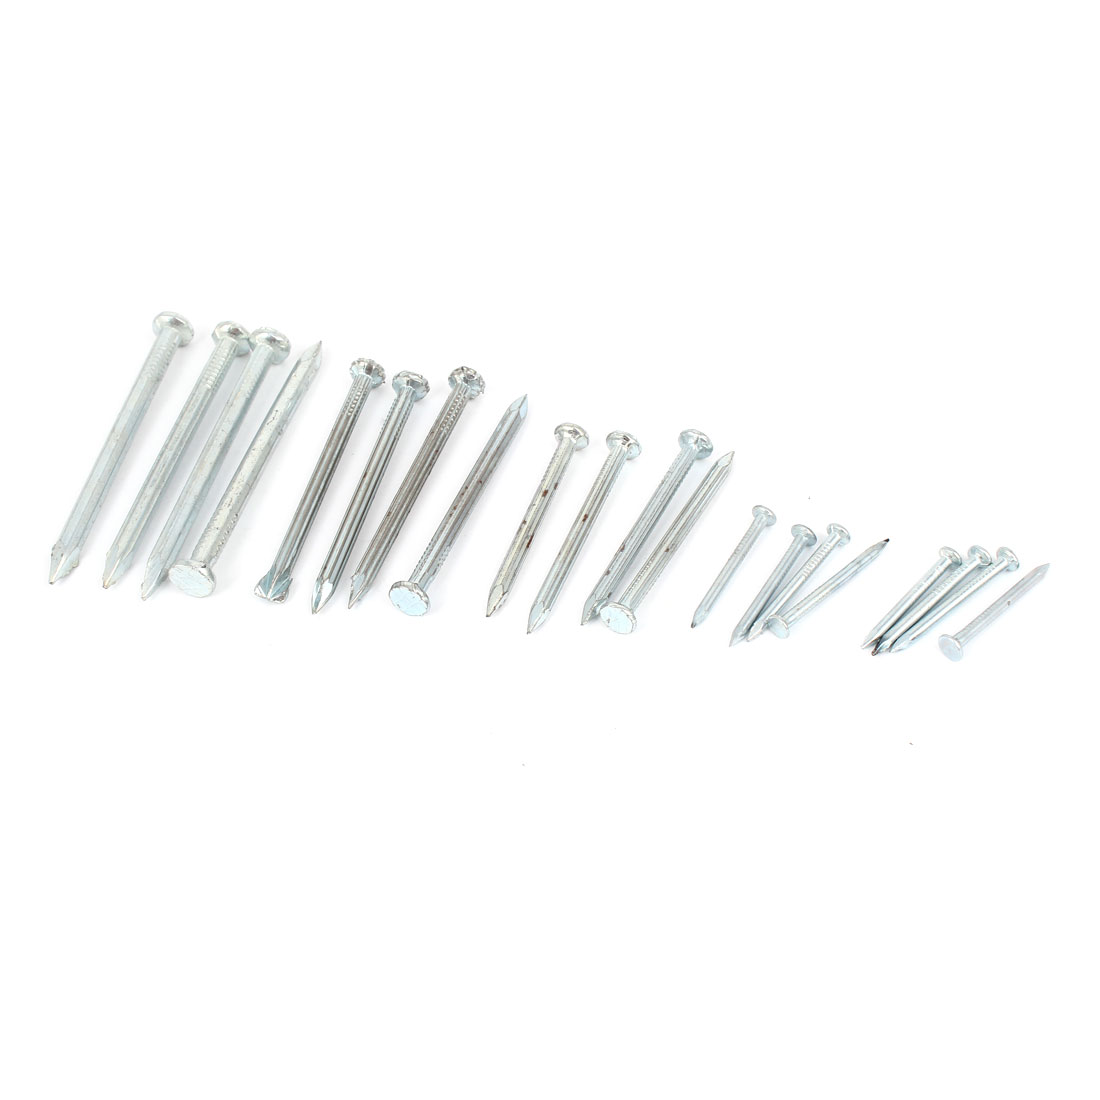 Hardware Fittings 60mm 50mm 40mm 25mm Long Iron Nails 20 Pcs